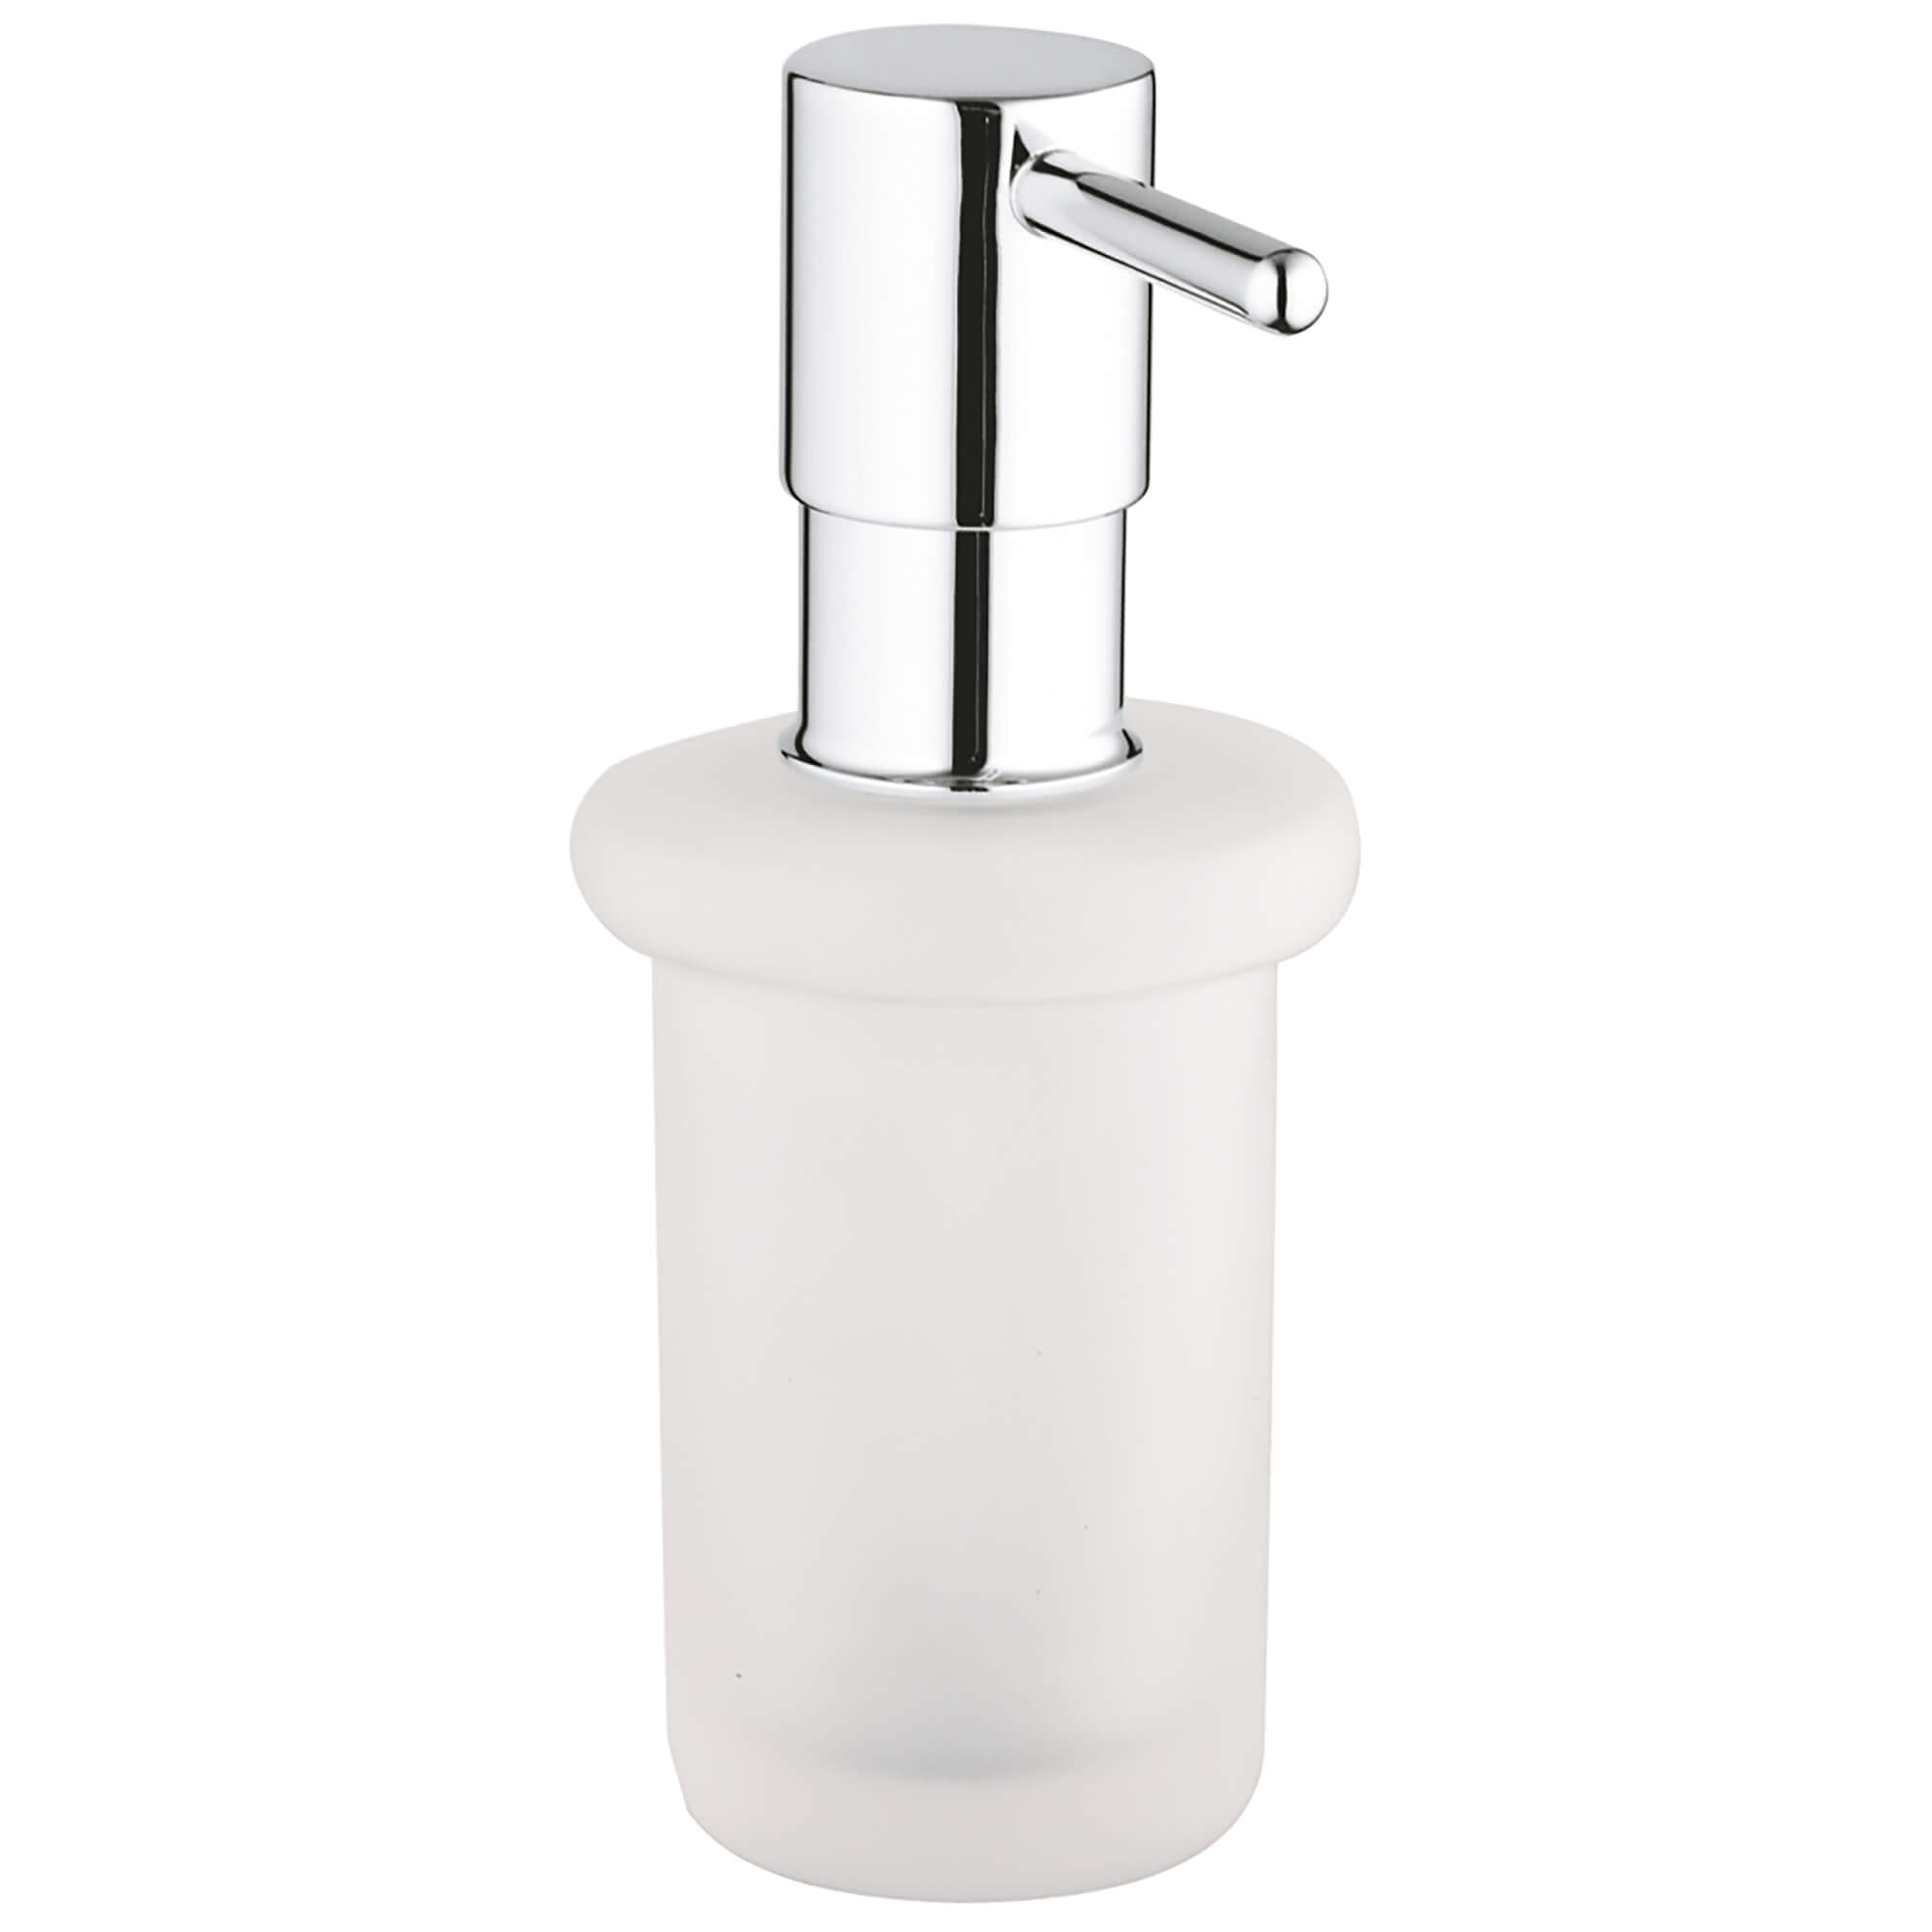 Soap Dispenser Without Holder GROHE CHROME